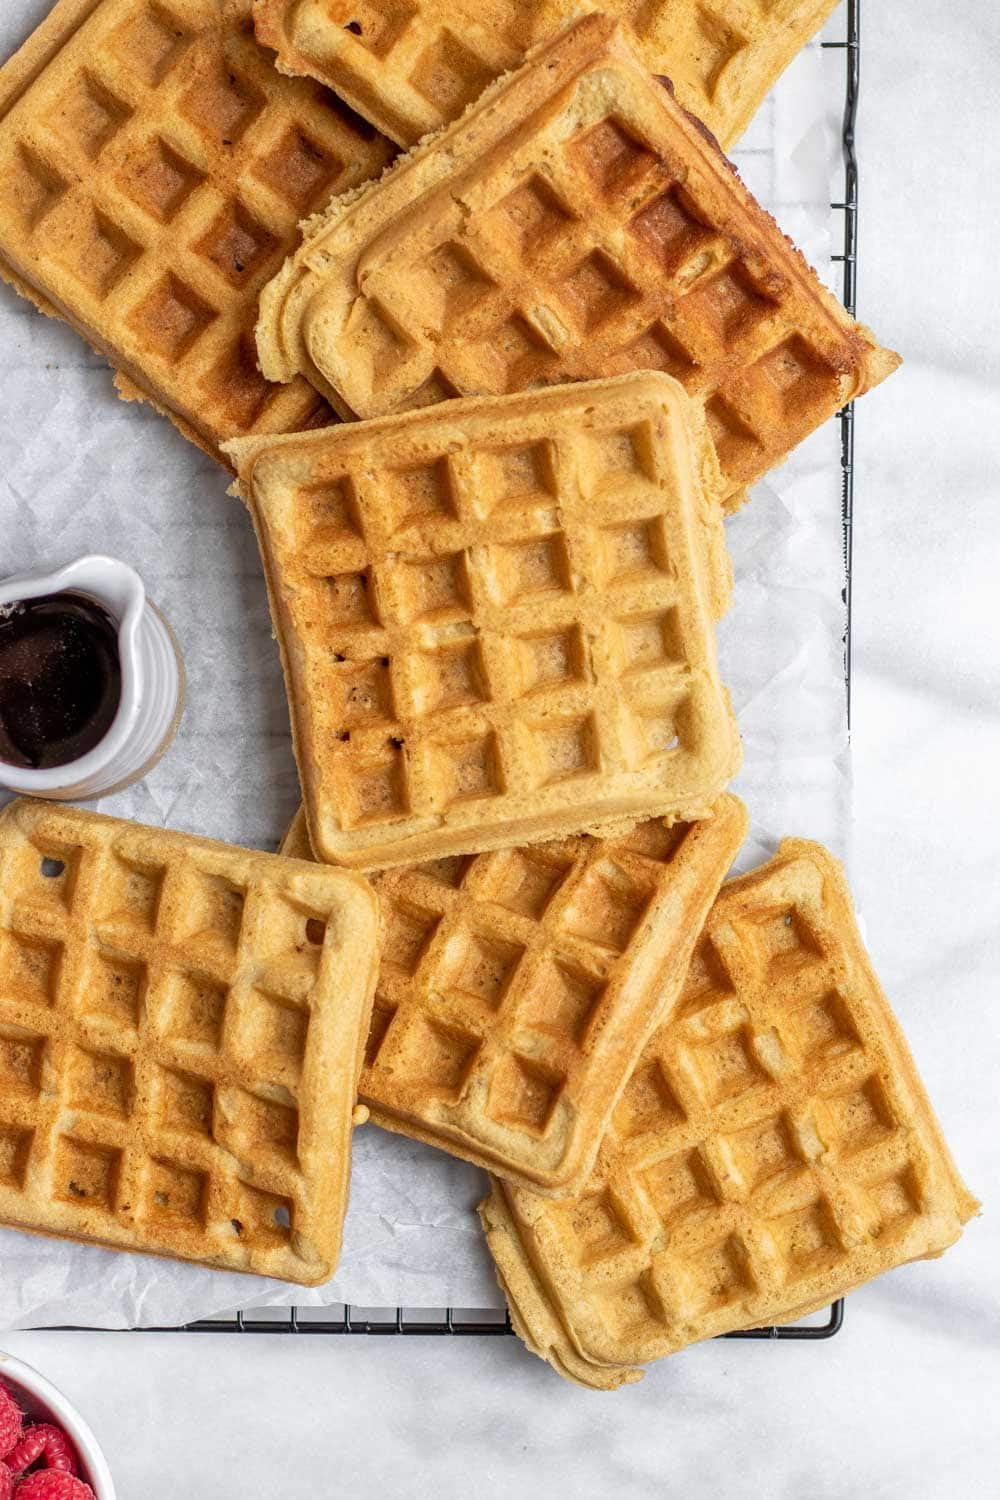 Vegan almond flour waffles cooling on a black rack.